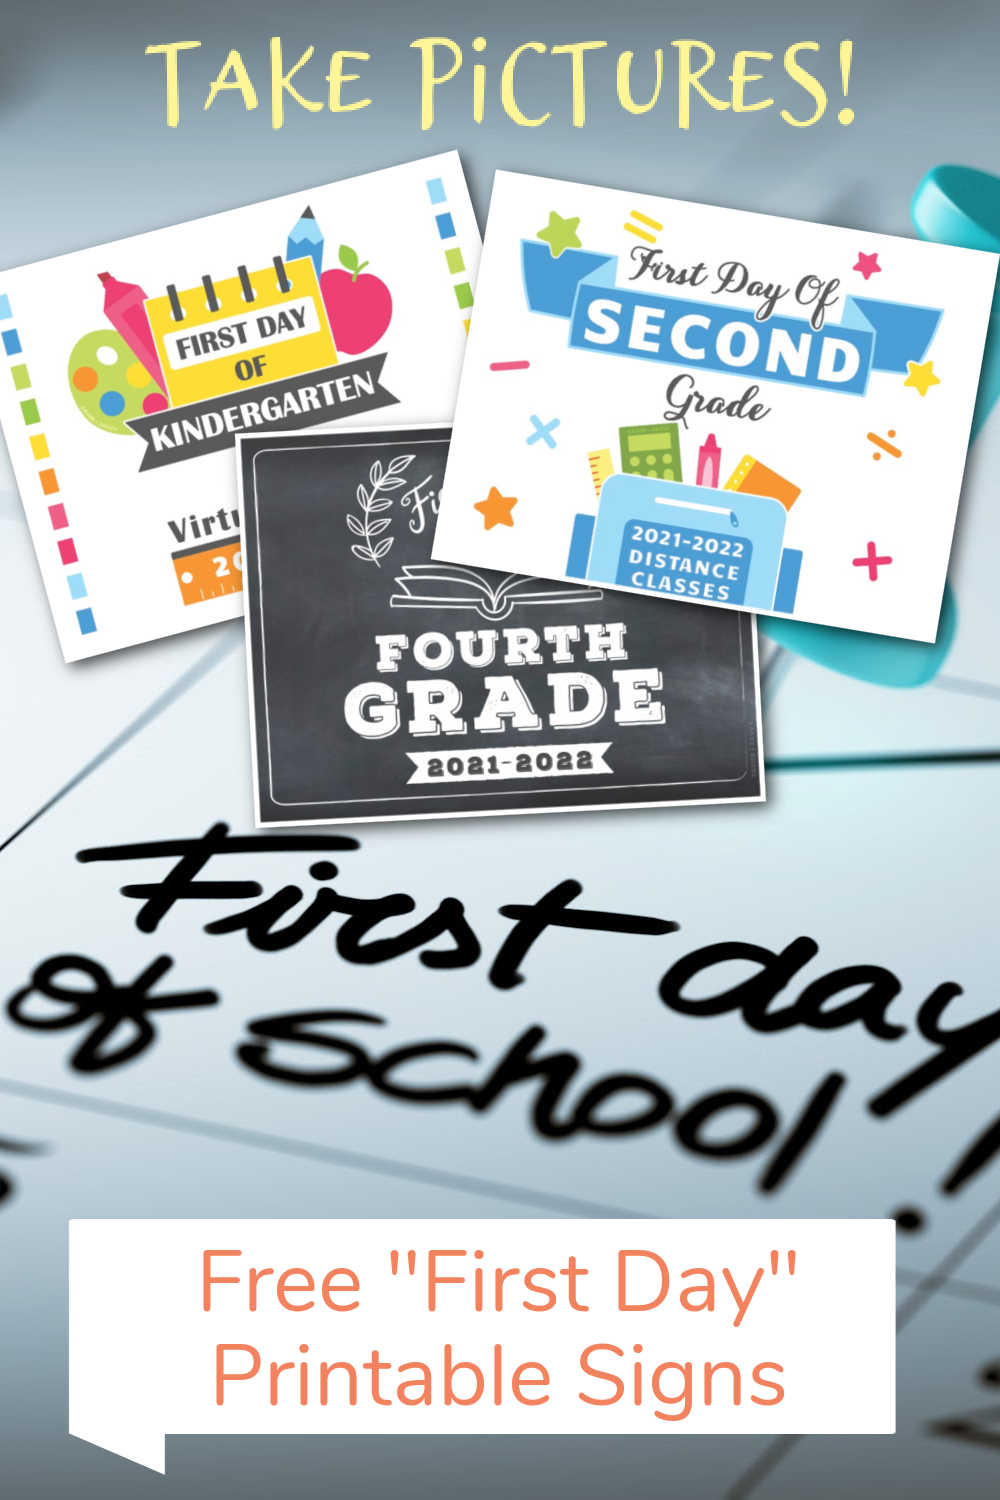 First Day of School Signs - Traditional, Virtual Distance Learning 2021-2022